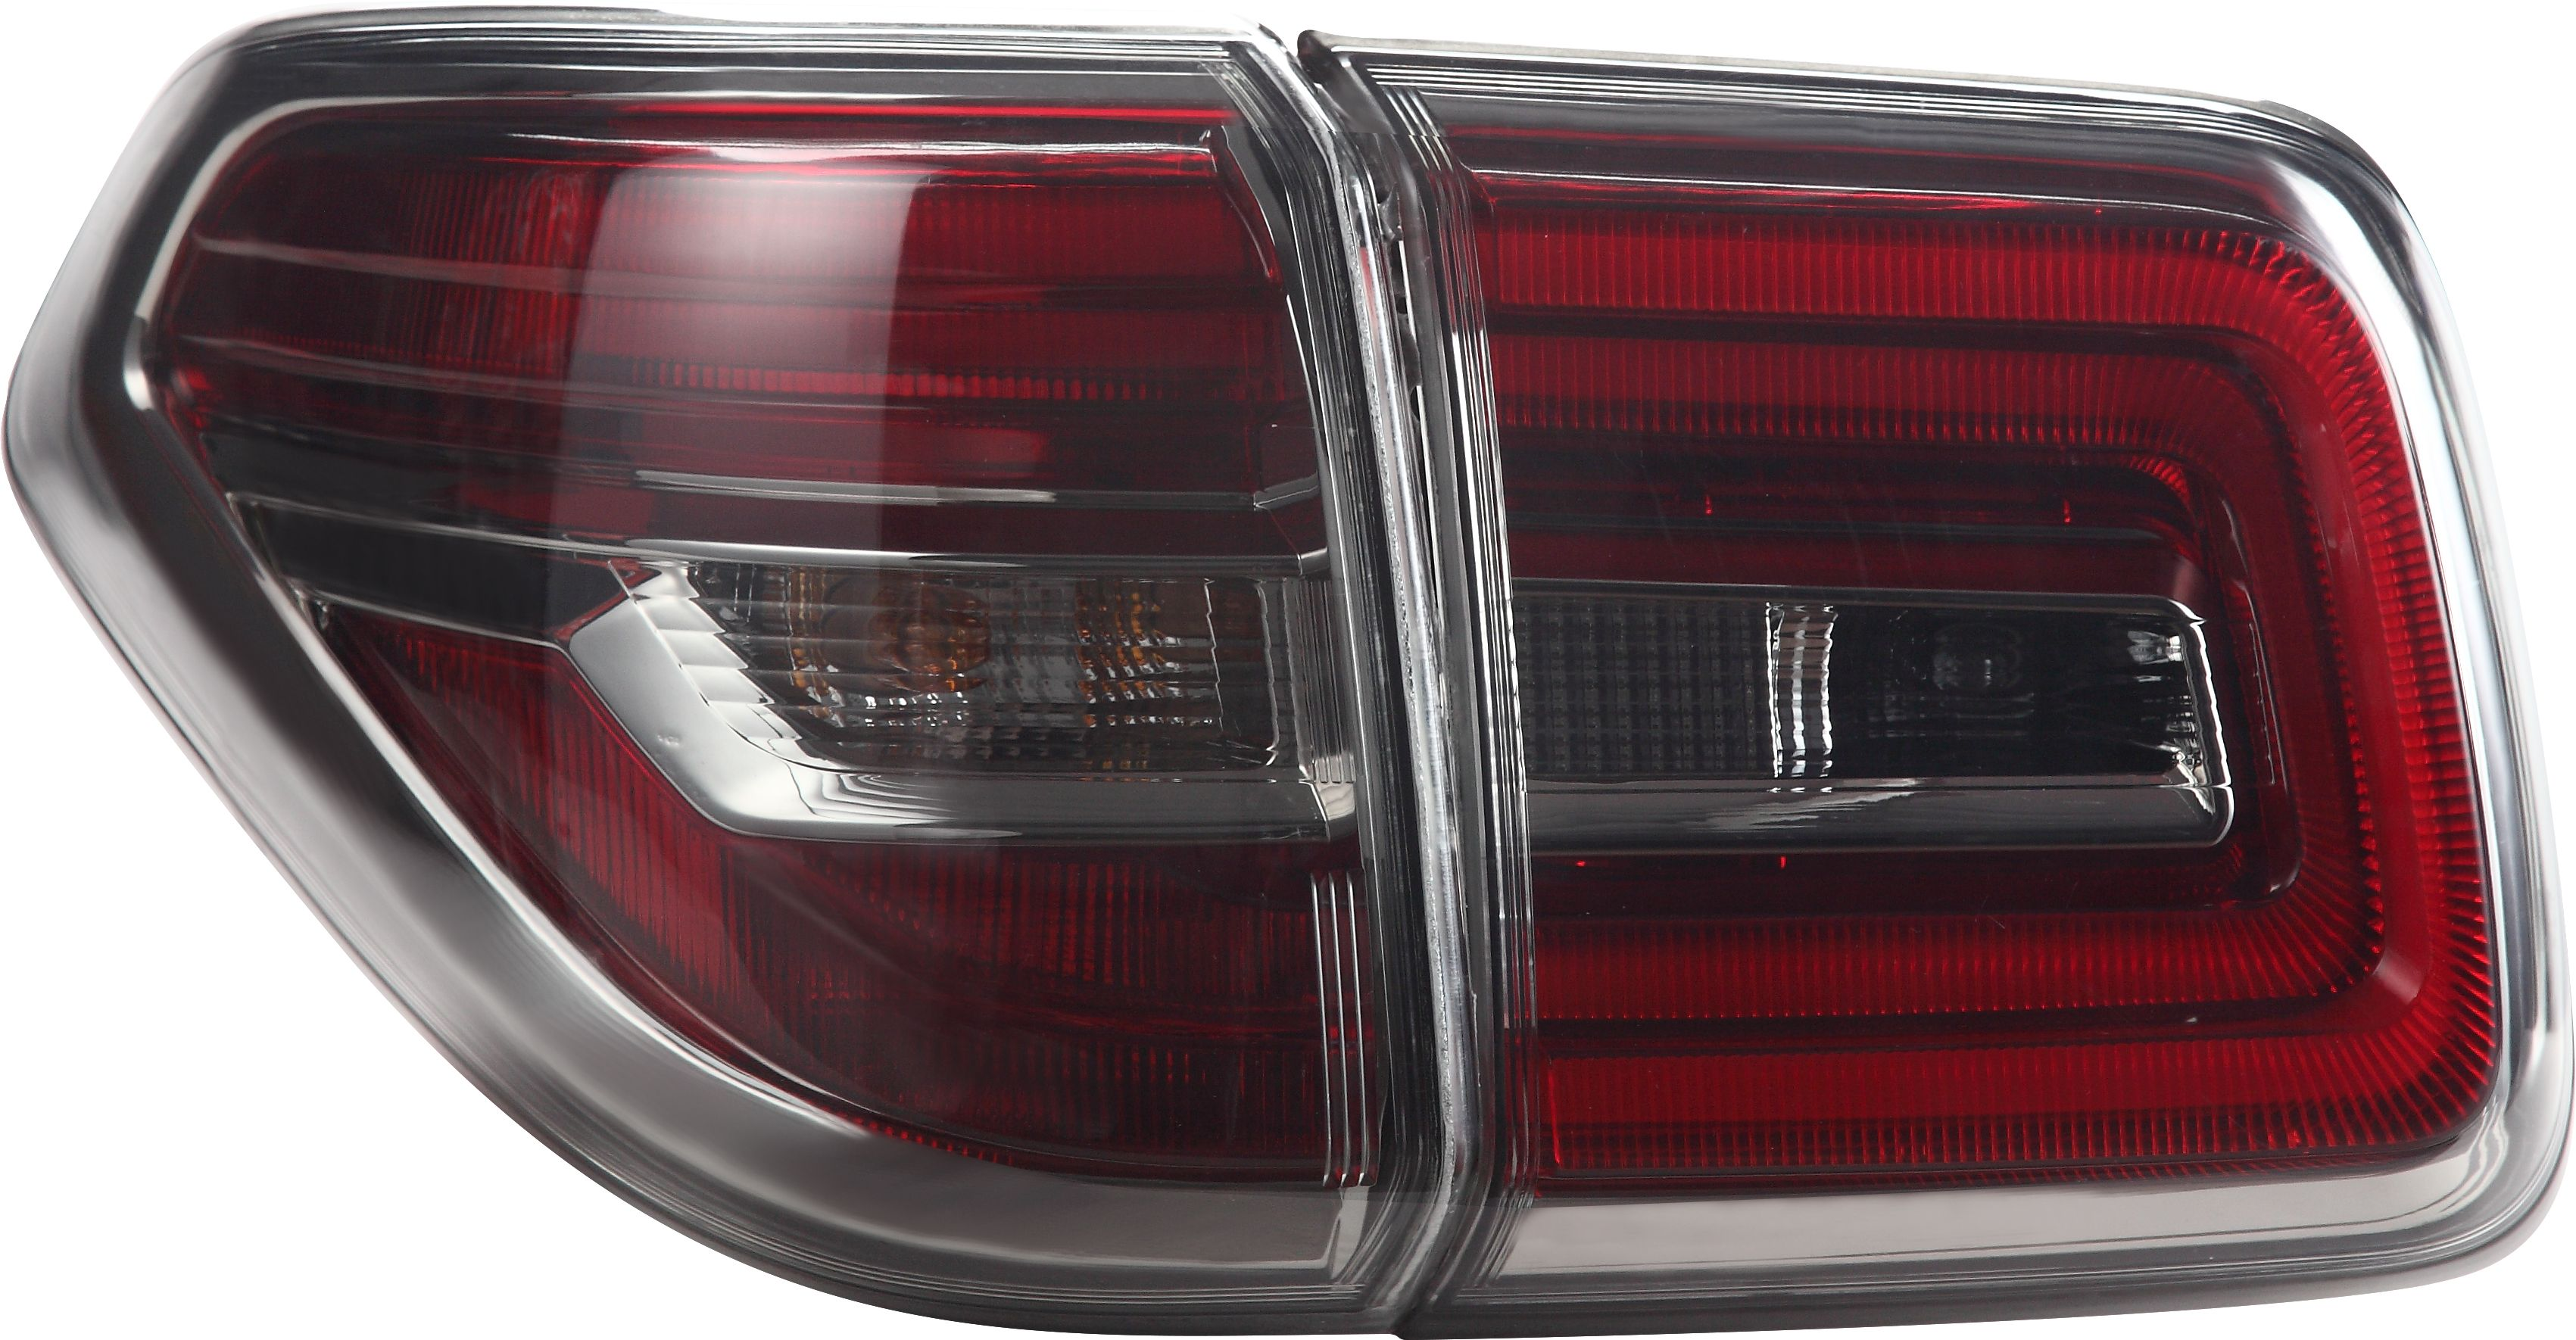 VLAND factory for Car Tail lamp for PATROL LED Taillight